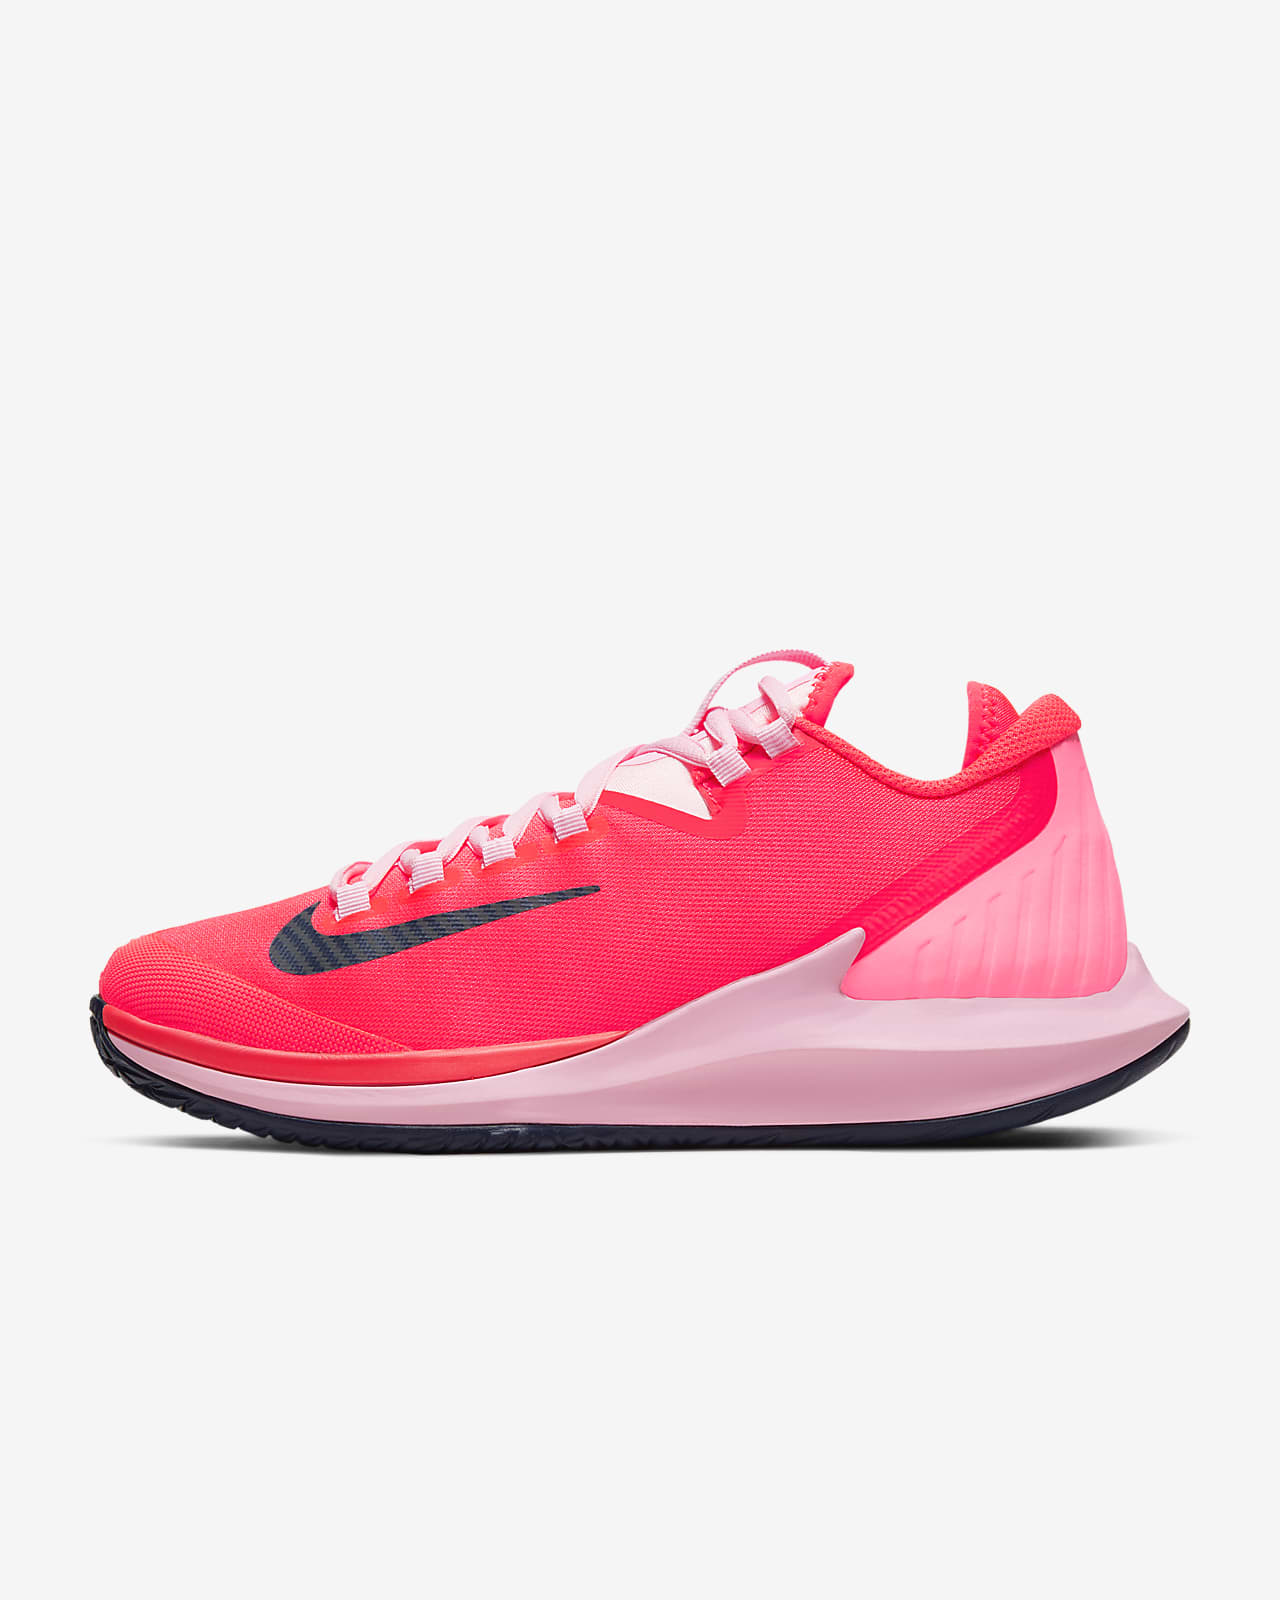 Nikecourt Air Zoom Zero Women S Tennis Shoe Nike Com